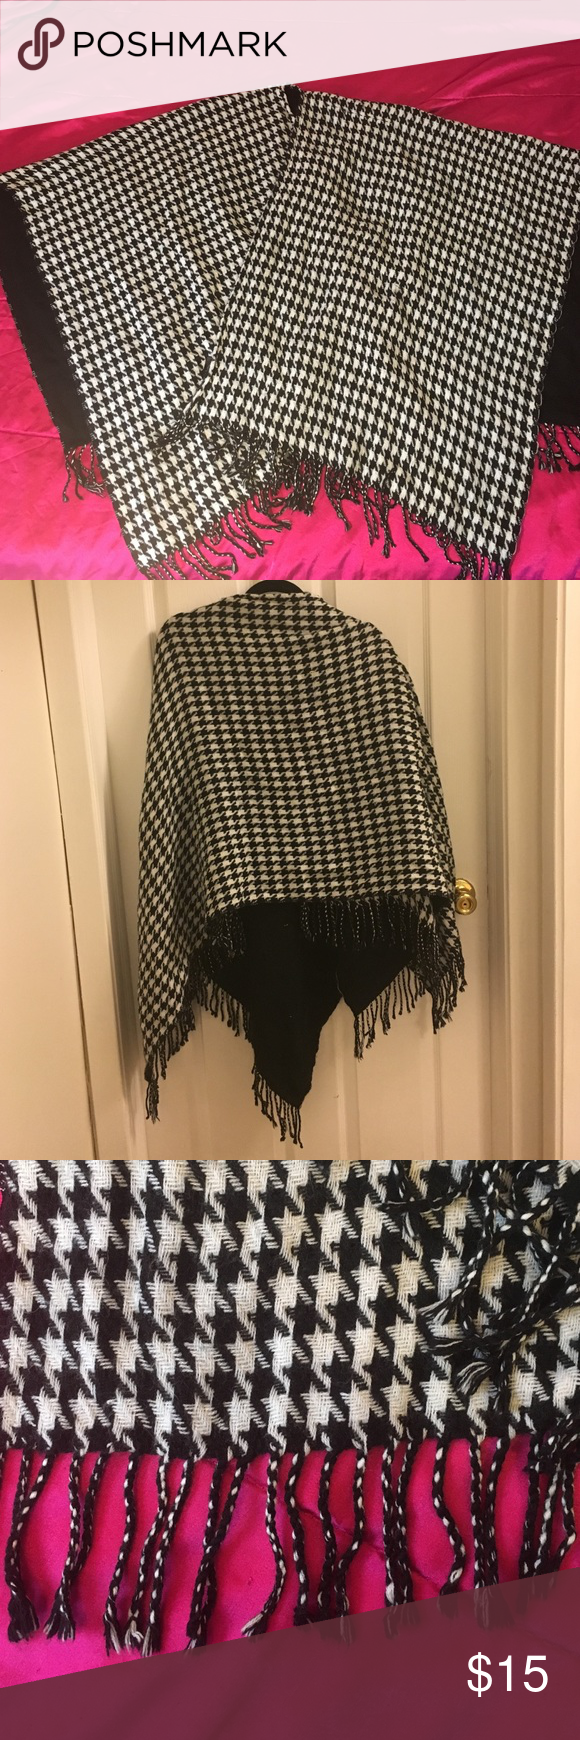 Houndstooth Patterned Poncho Black and white houndstooth pattern poncho. Super light weight yet super warm! Fringes at the bottom. Acrylic material. Small, barely even noticeable knick in fabric (but still important enough for me to point out 😃). Other